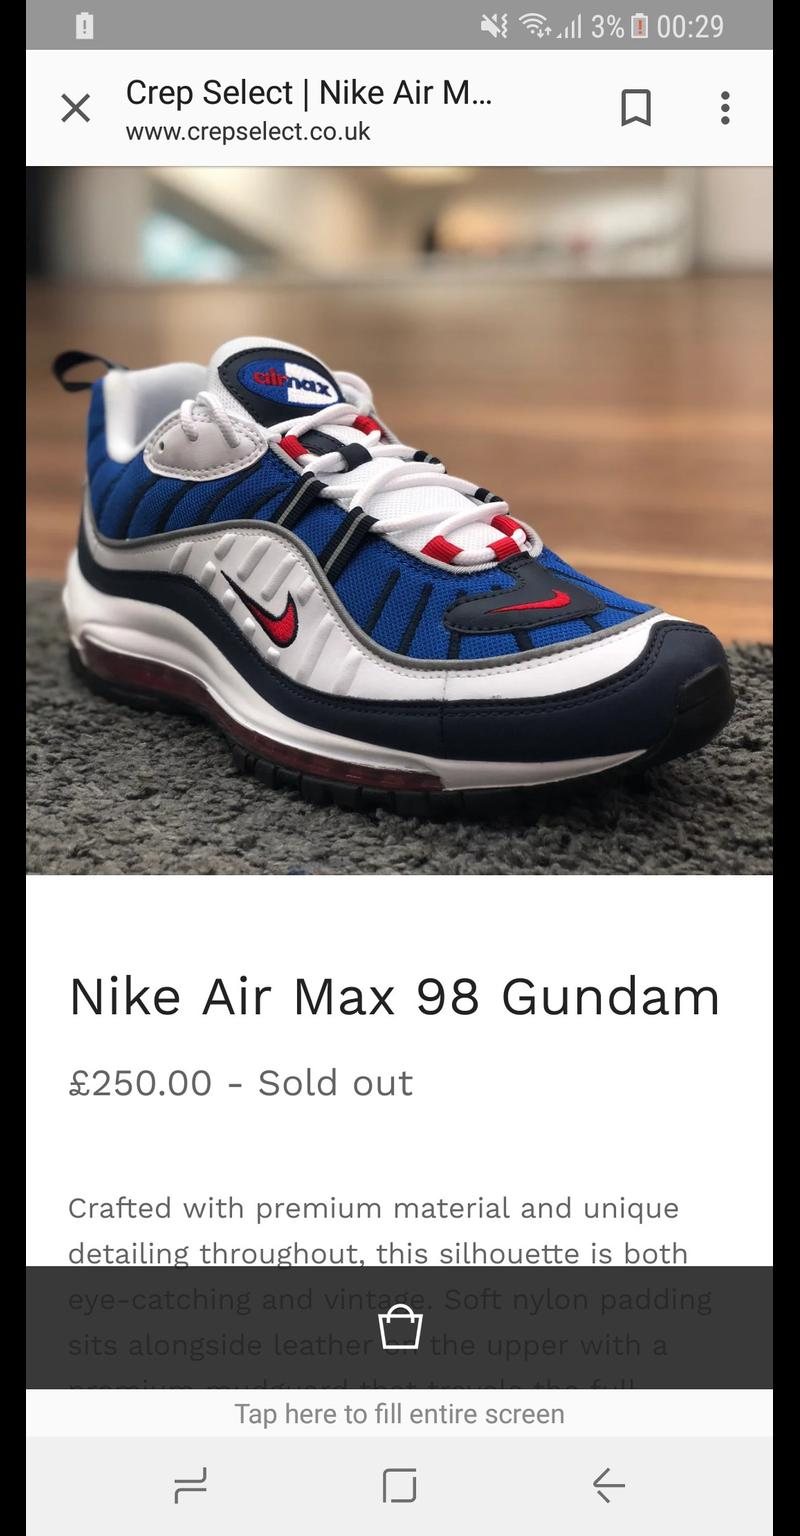 Air Max 98 Gundam Brand New In Ss16 Basildon For 280 00 For Sale